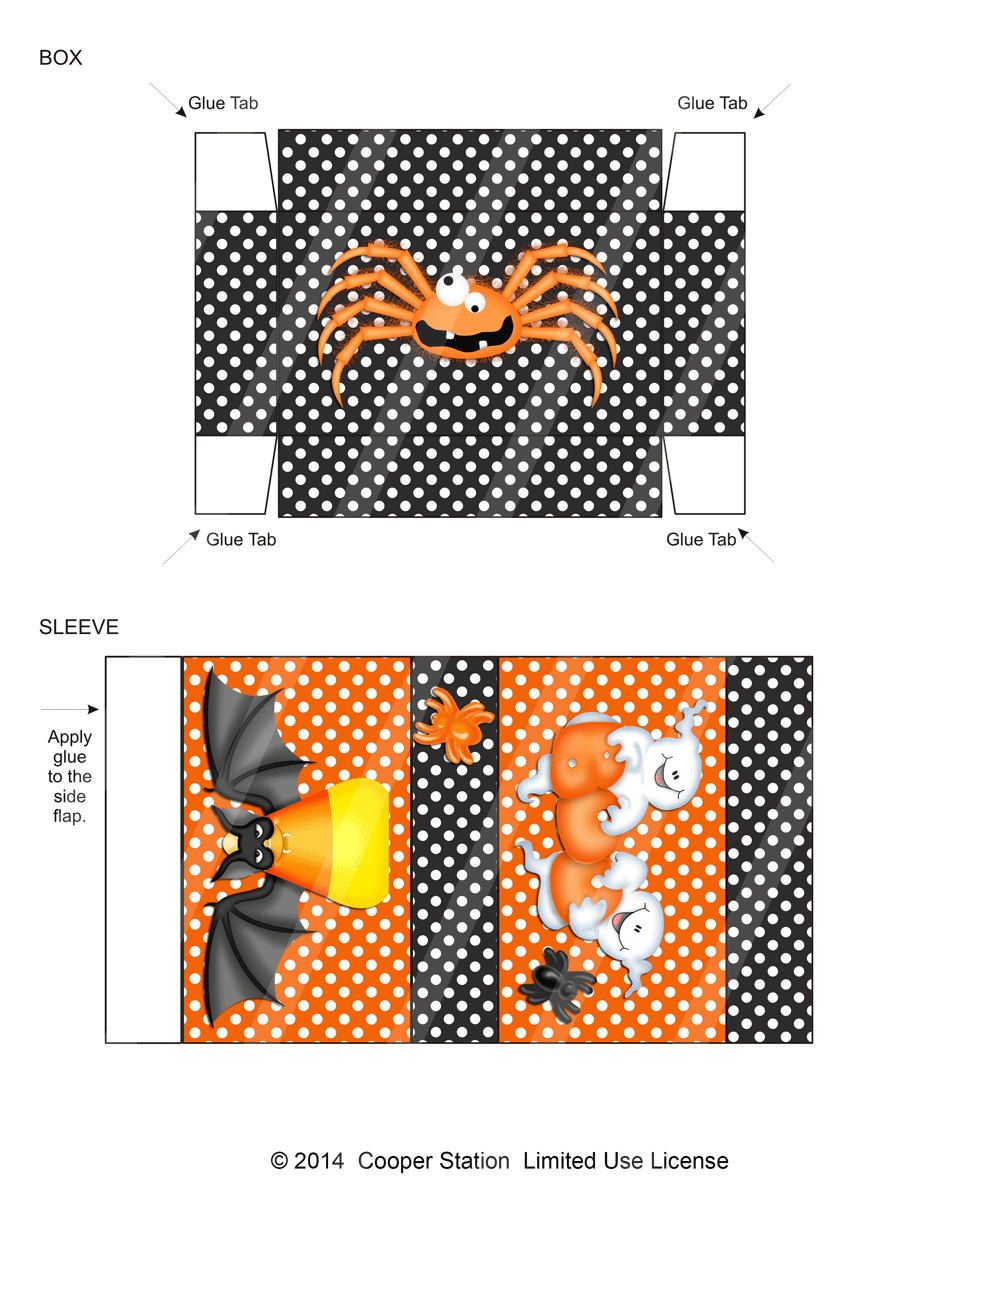 Digital Printable Halloween Treat Box With Ghost And Bat Design